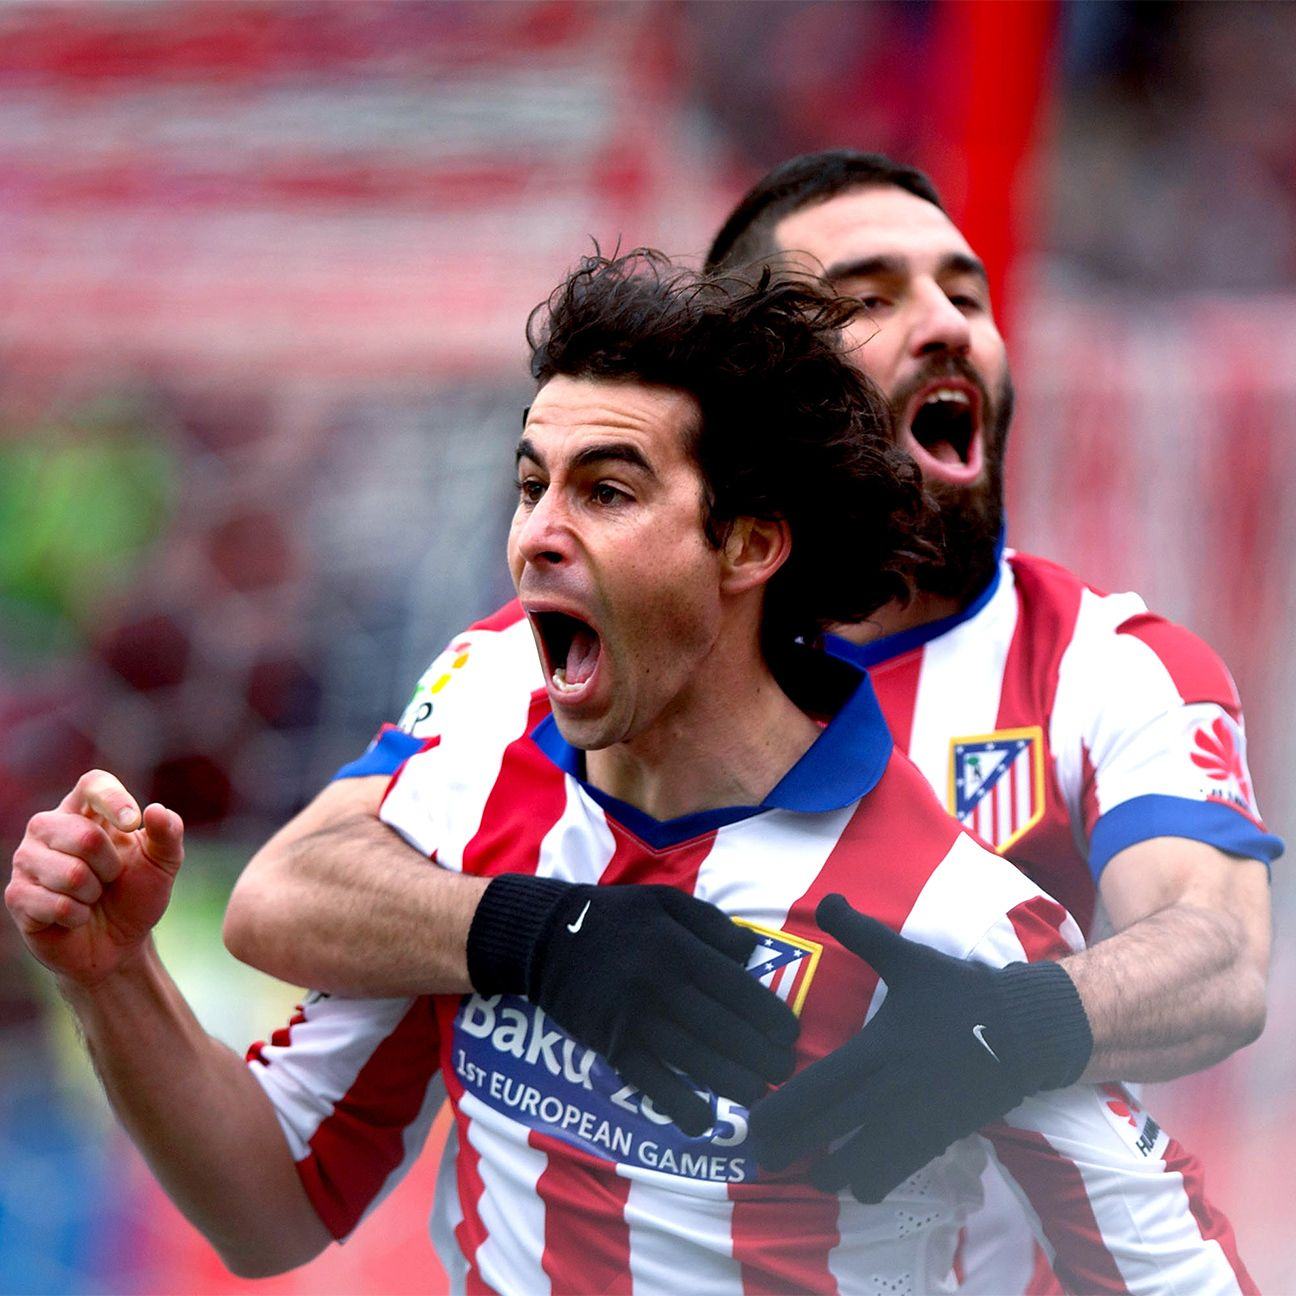 Tiago and the Atletico midfield will be looking to overrun their Real counterparts in Tuesday's UCL quarterfinal second leg, just like they did in their 4-0 win over Los Blancos earlier this season.